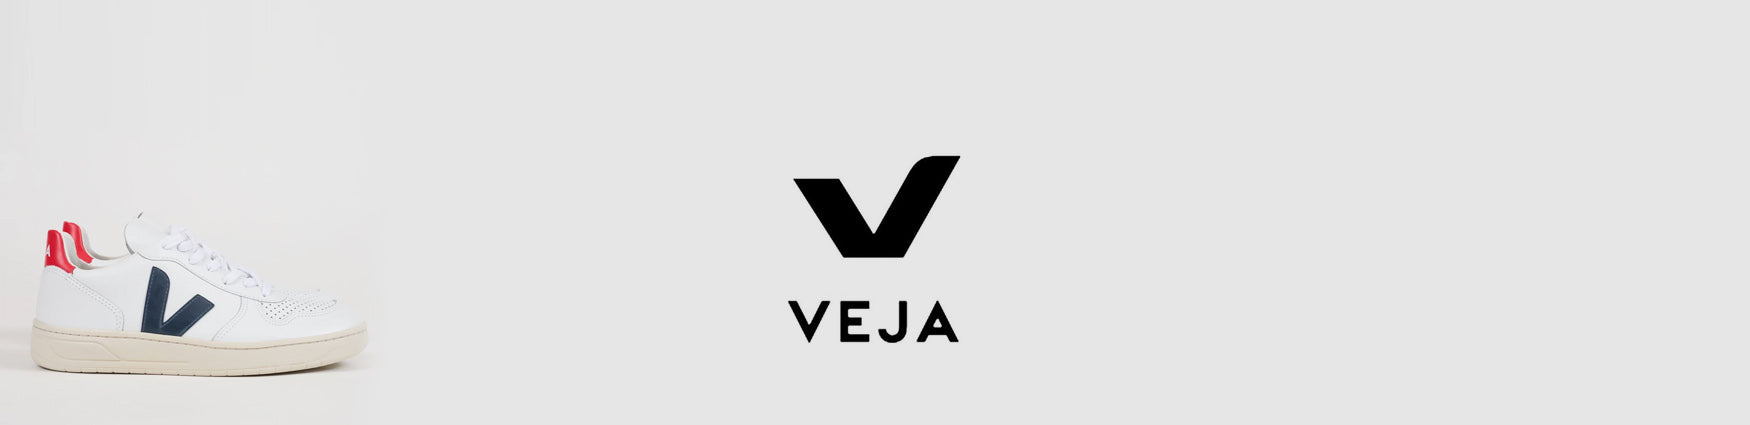 VEJA V-10 Extra White Leather Nautico Pekin Trainers | Shop Veja trainers from Roo's Beach UK